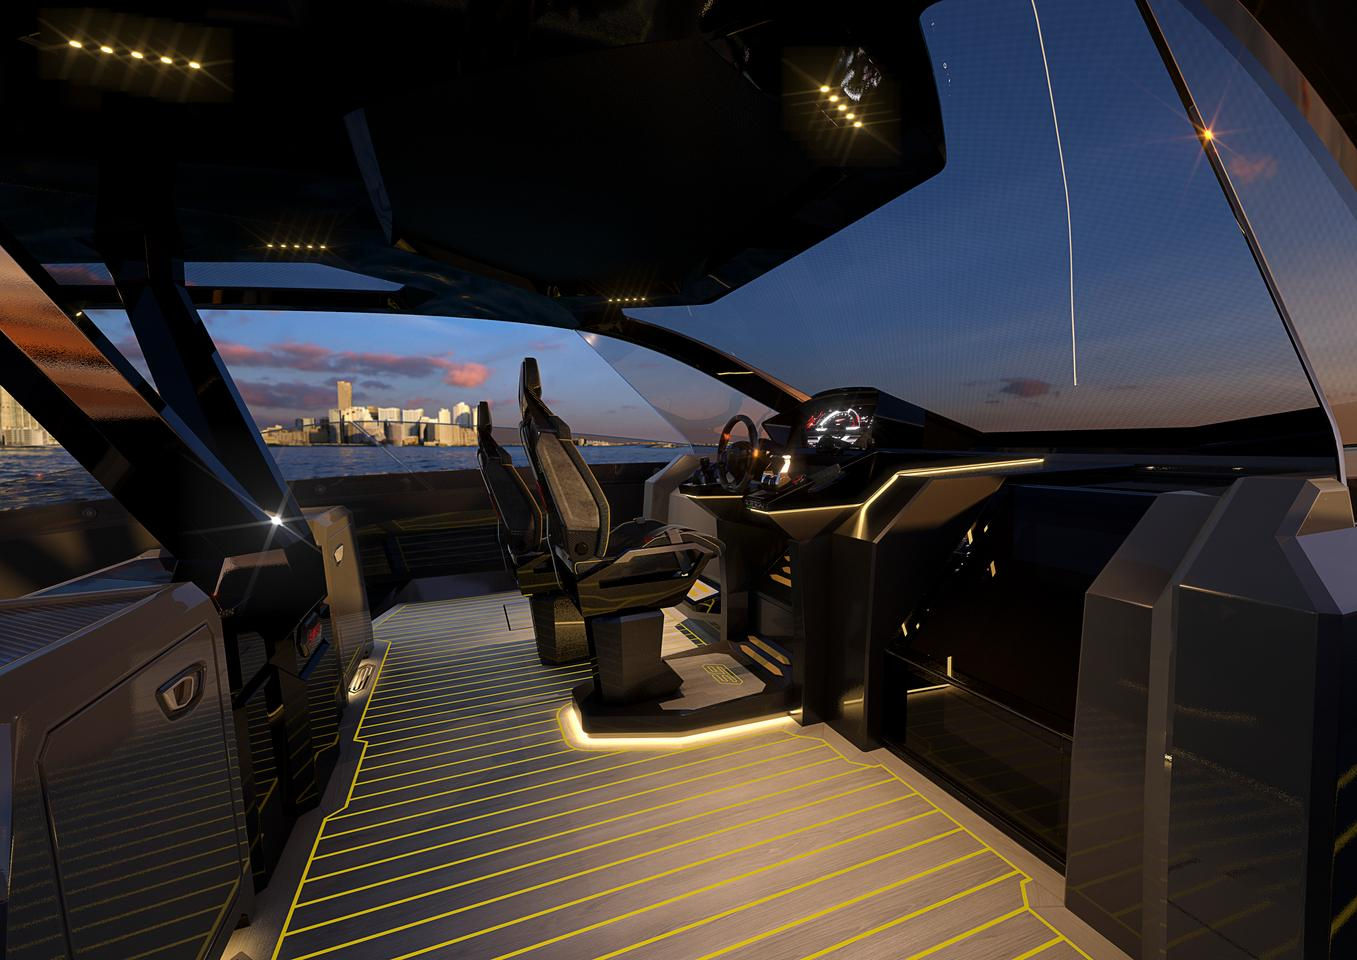 The interior of the Tecnomar for Lamborghini 63 will be offered in two configurations